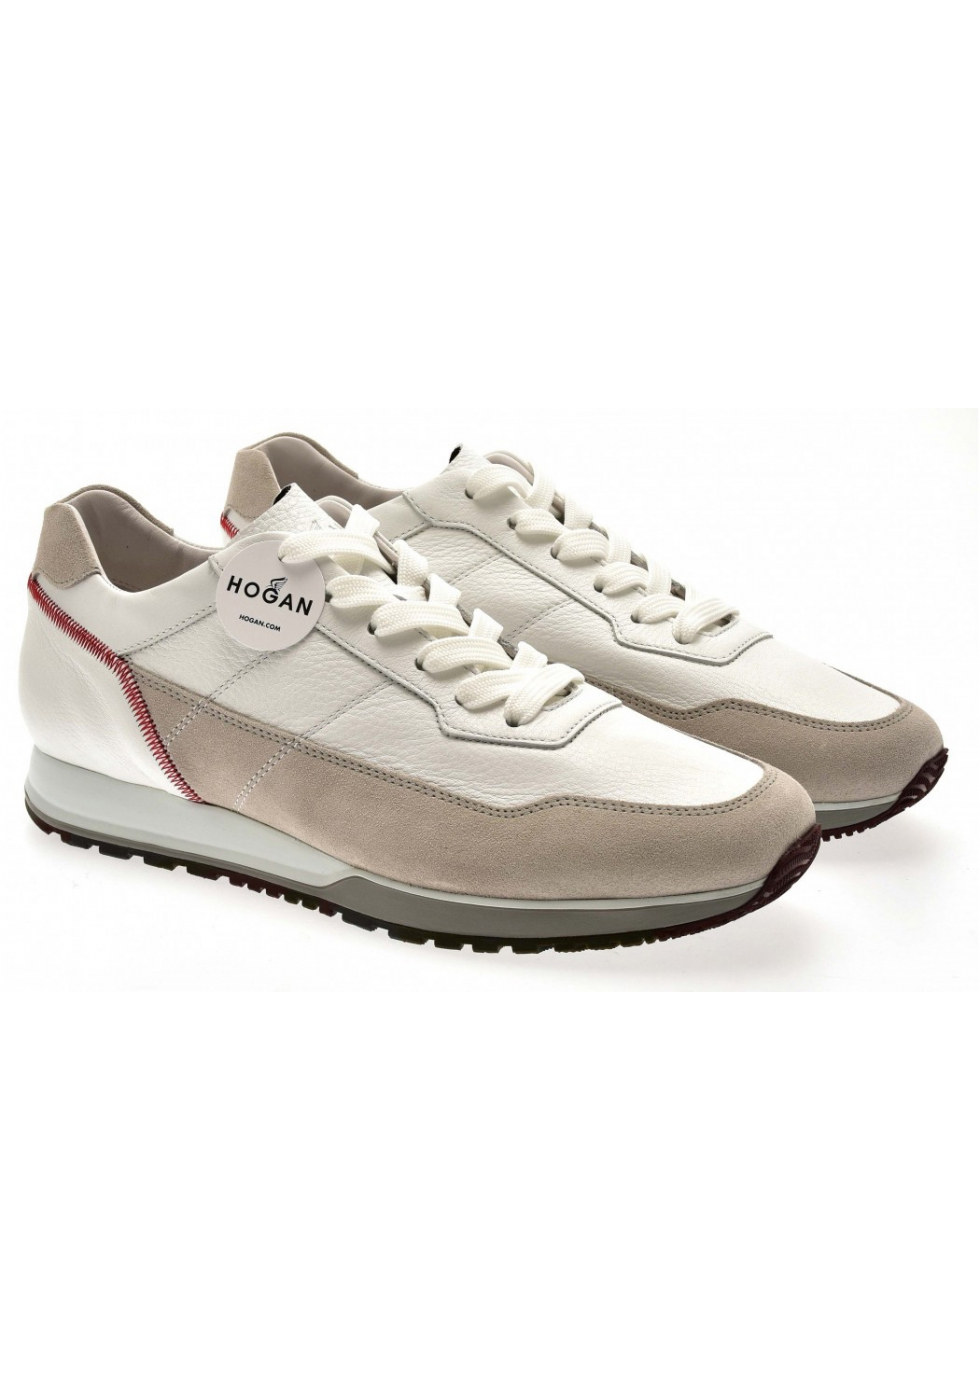 Hogan men's sneakers in white and beige leather and suede ...